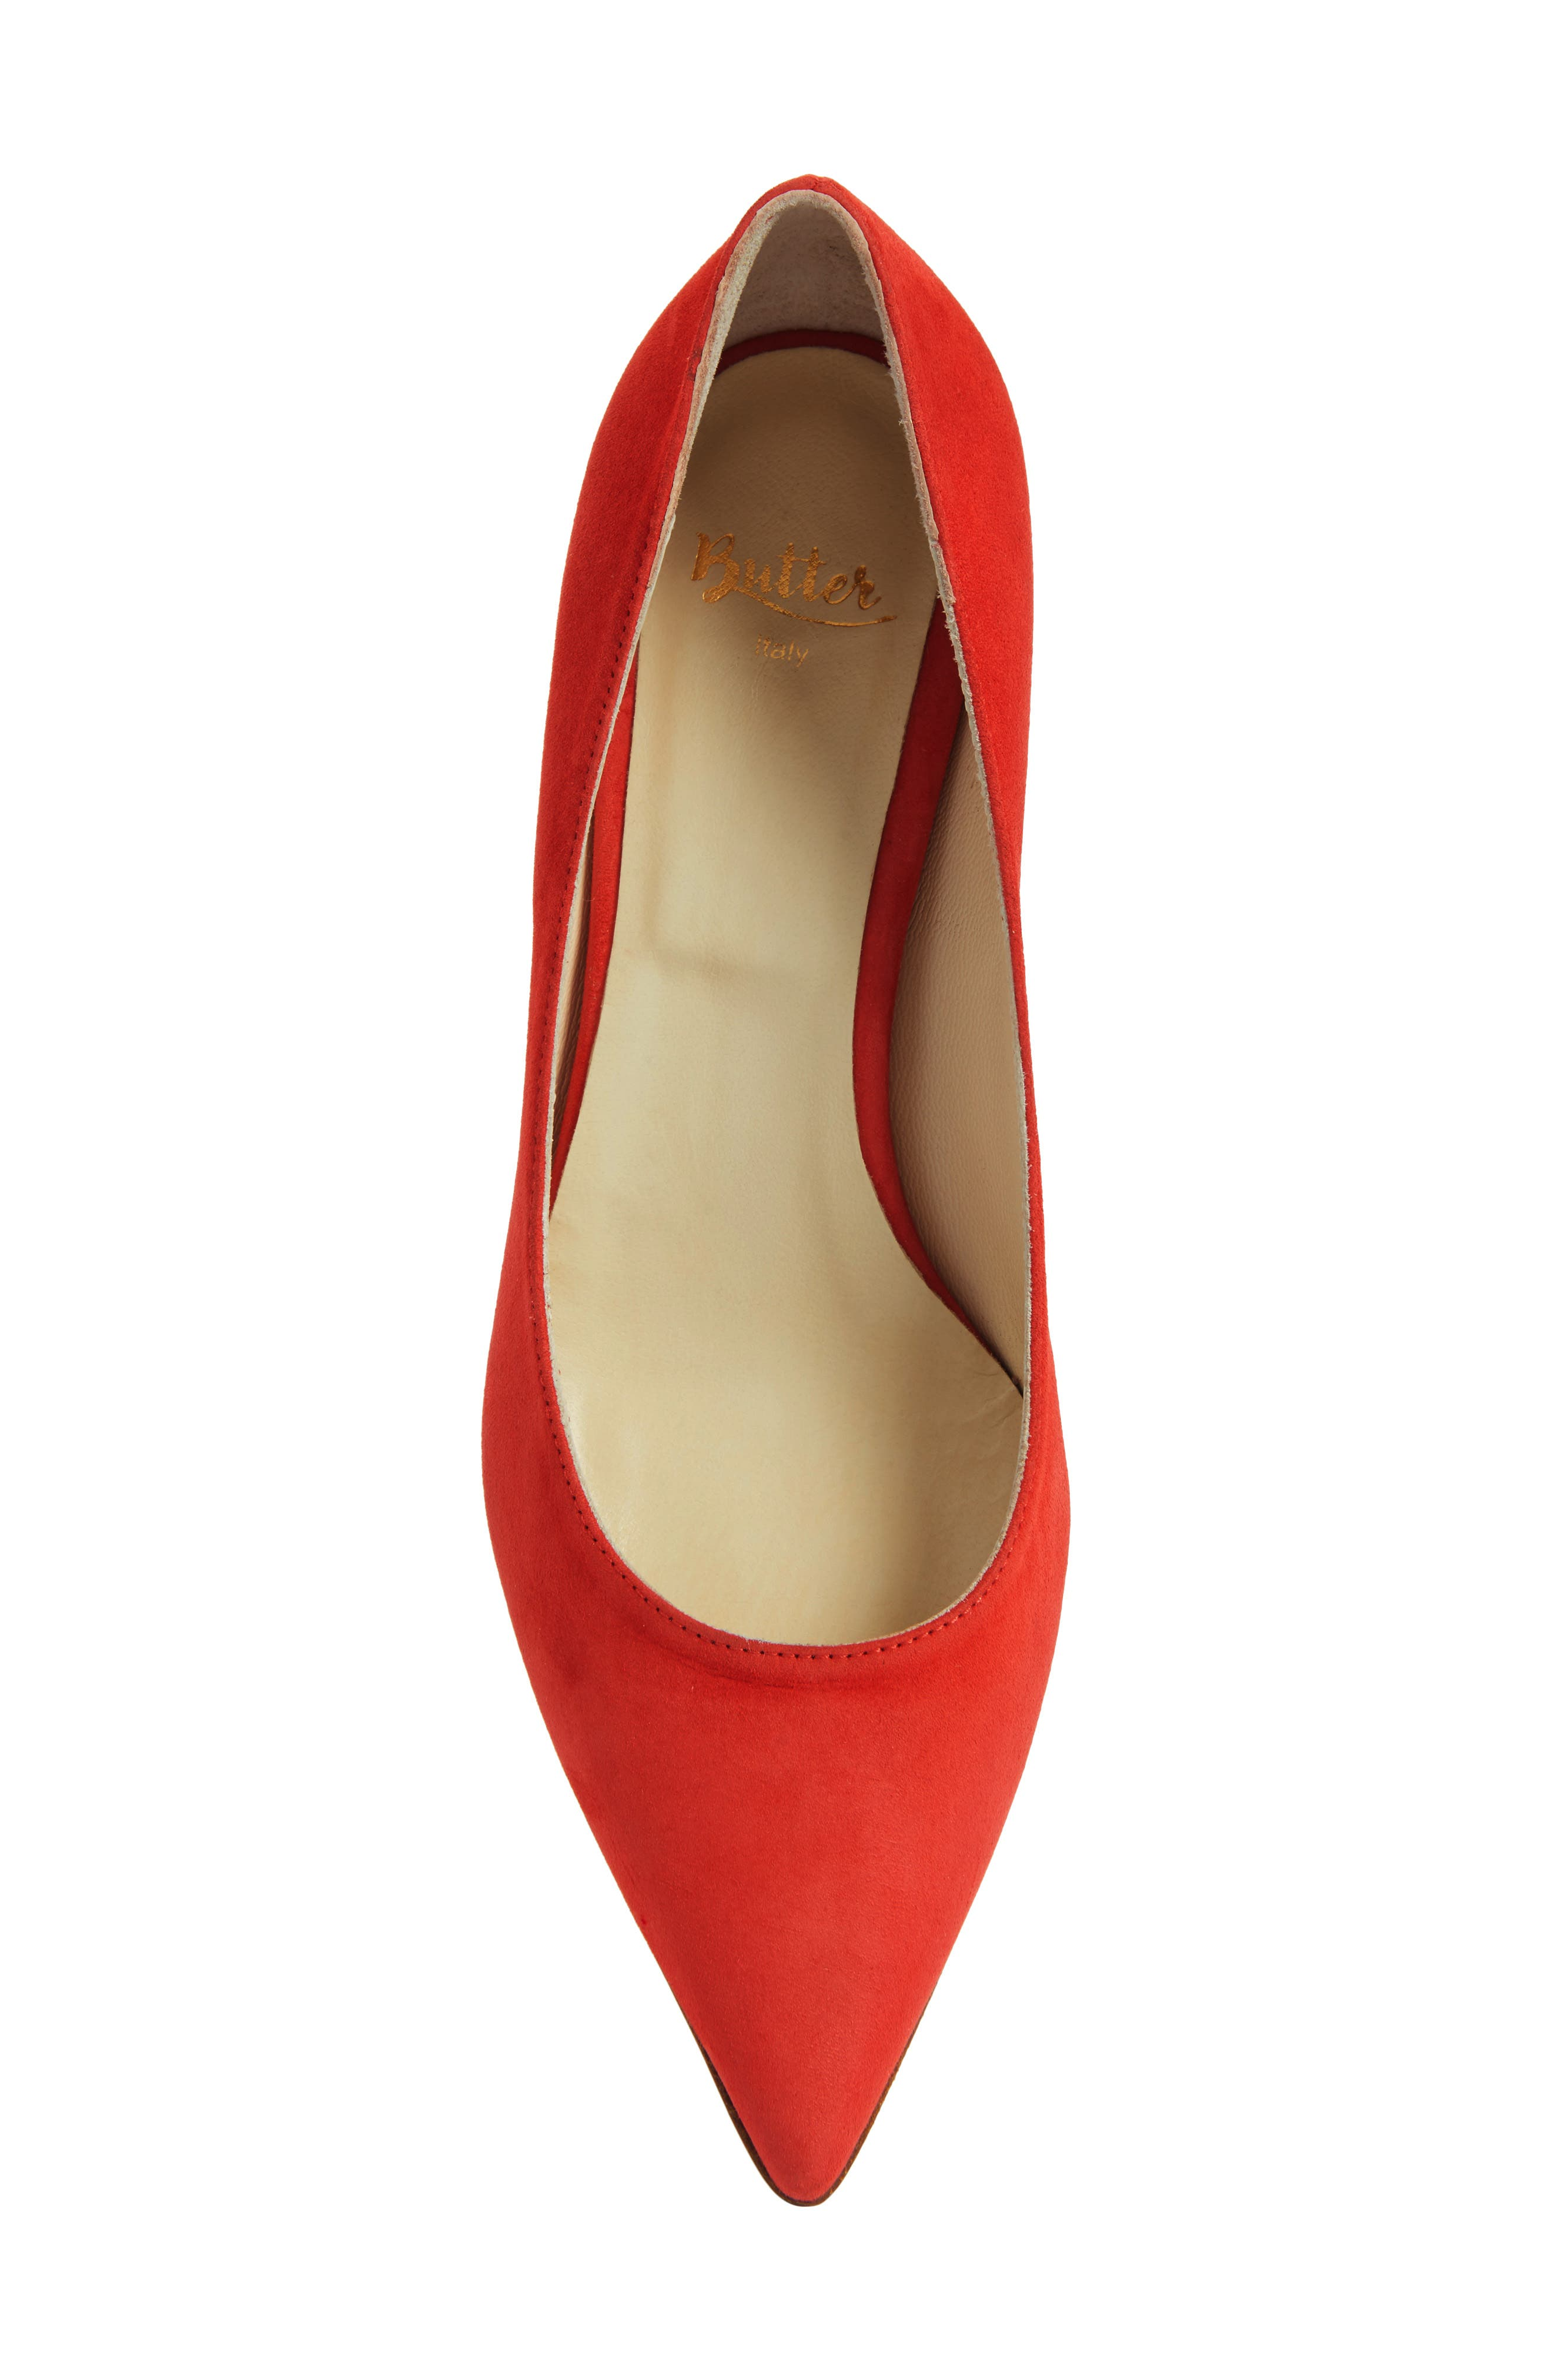 Butter Born Pointy Toe Pump,                             Alternate thumbnail 35, color,